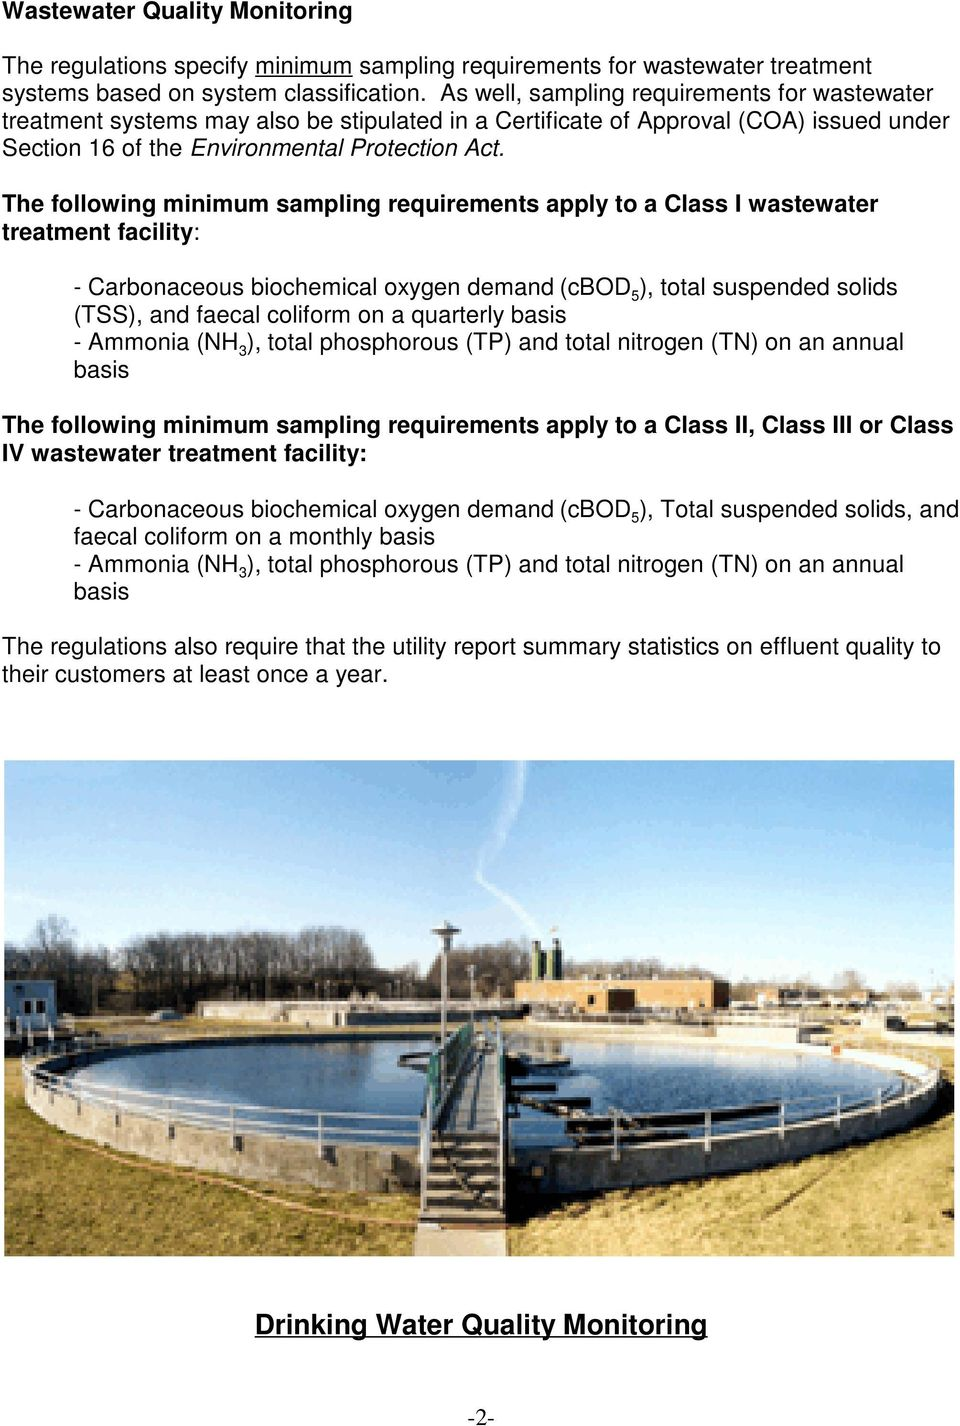 The following minimum sampling requirements apply to a Class I wastewater treatment facility: - Carbonaceous biochemical oxygen demand (cbod 5 ), total suspended solids (TSS), and faecal coliform on